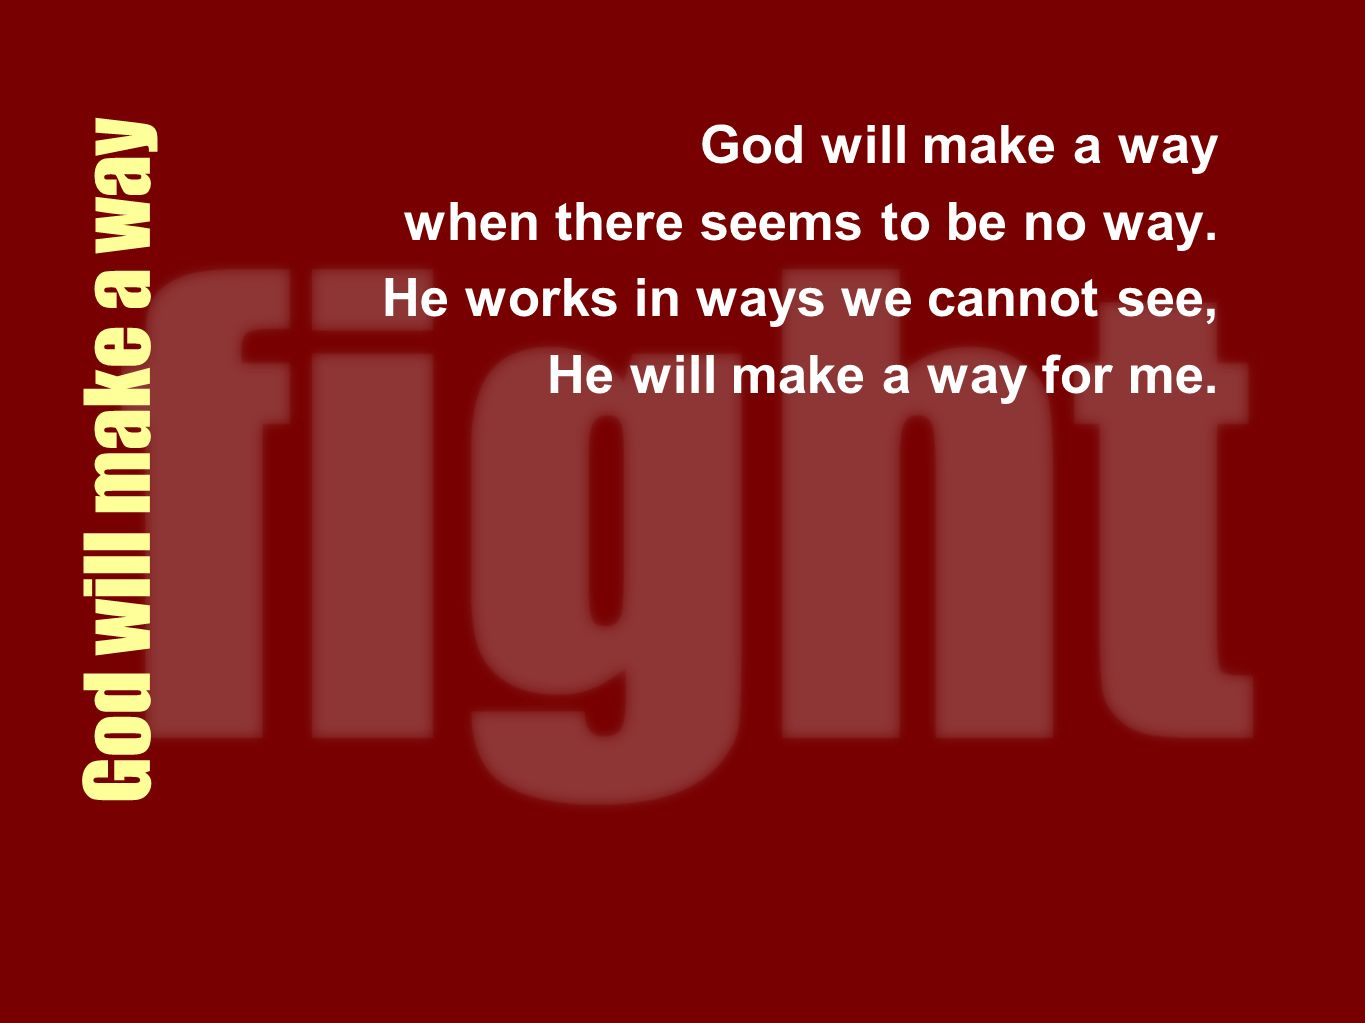 God will make a way when there seems to be no way. He works in ways we cannot see, He will make a way for me.